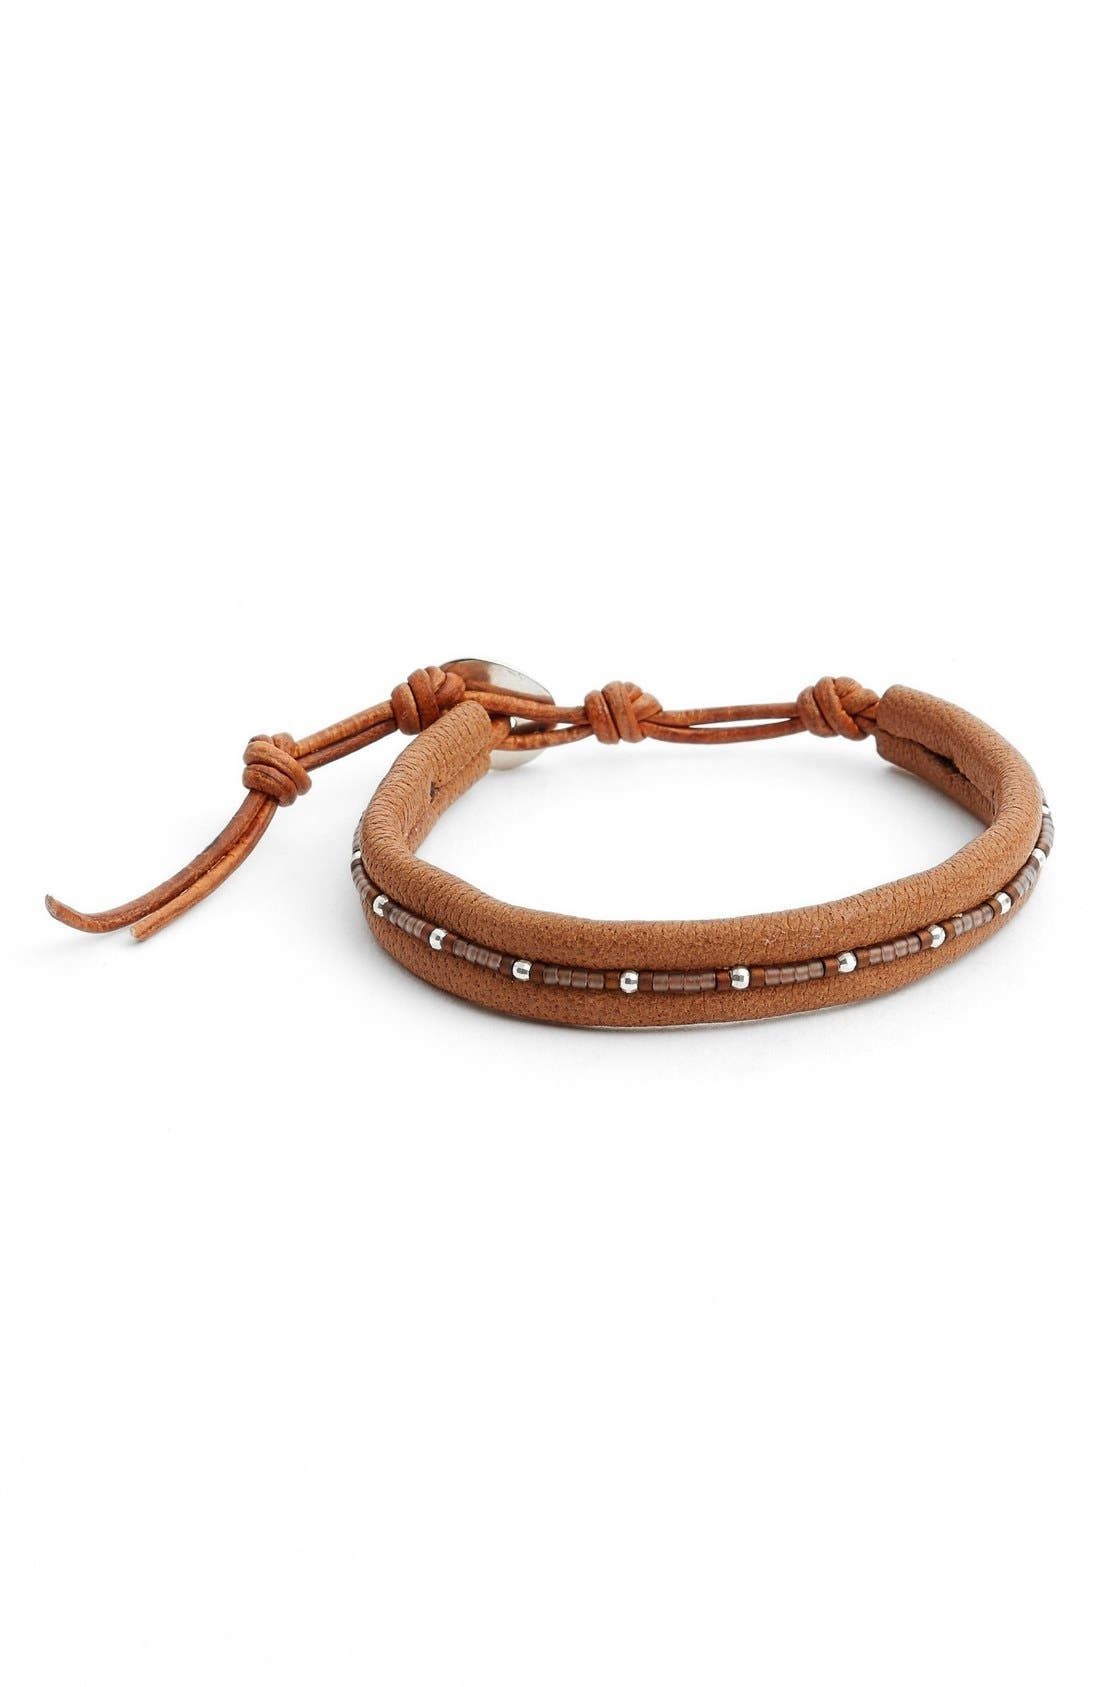 Main Image - Chan Luu Seed Beed Leather Bracelet